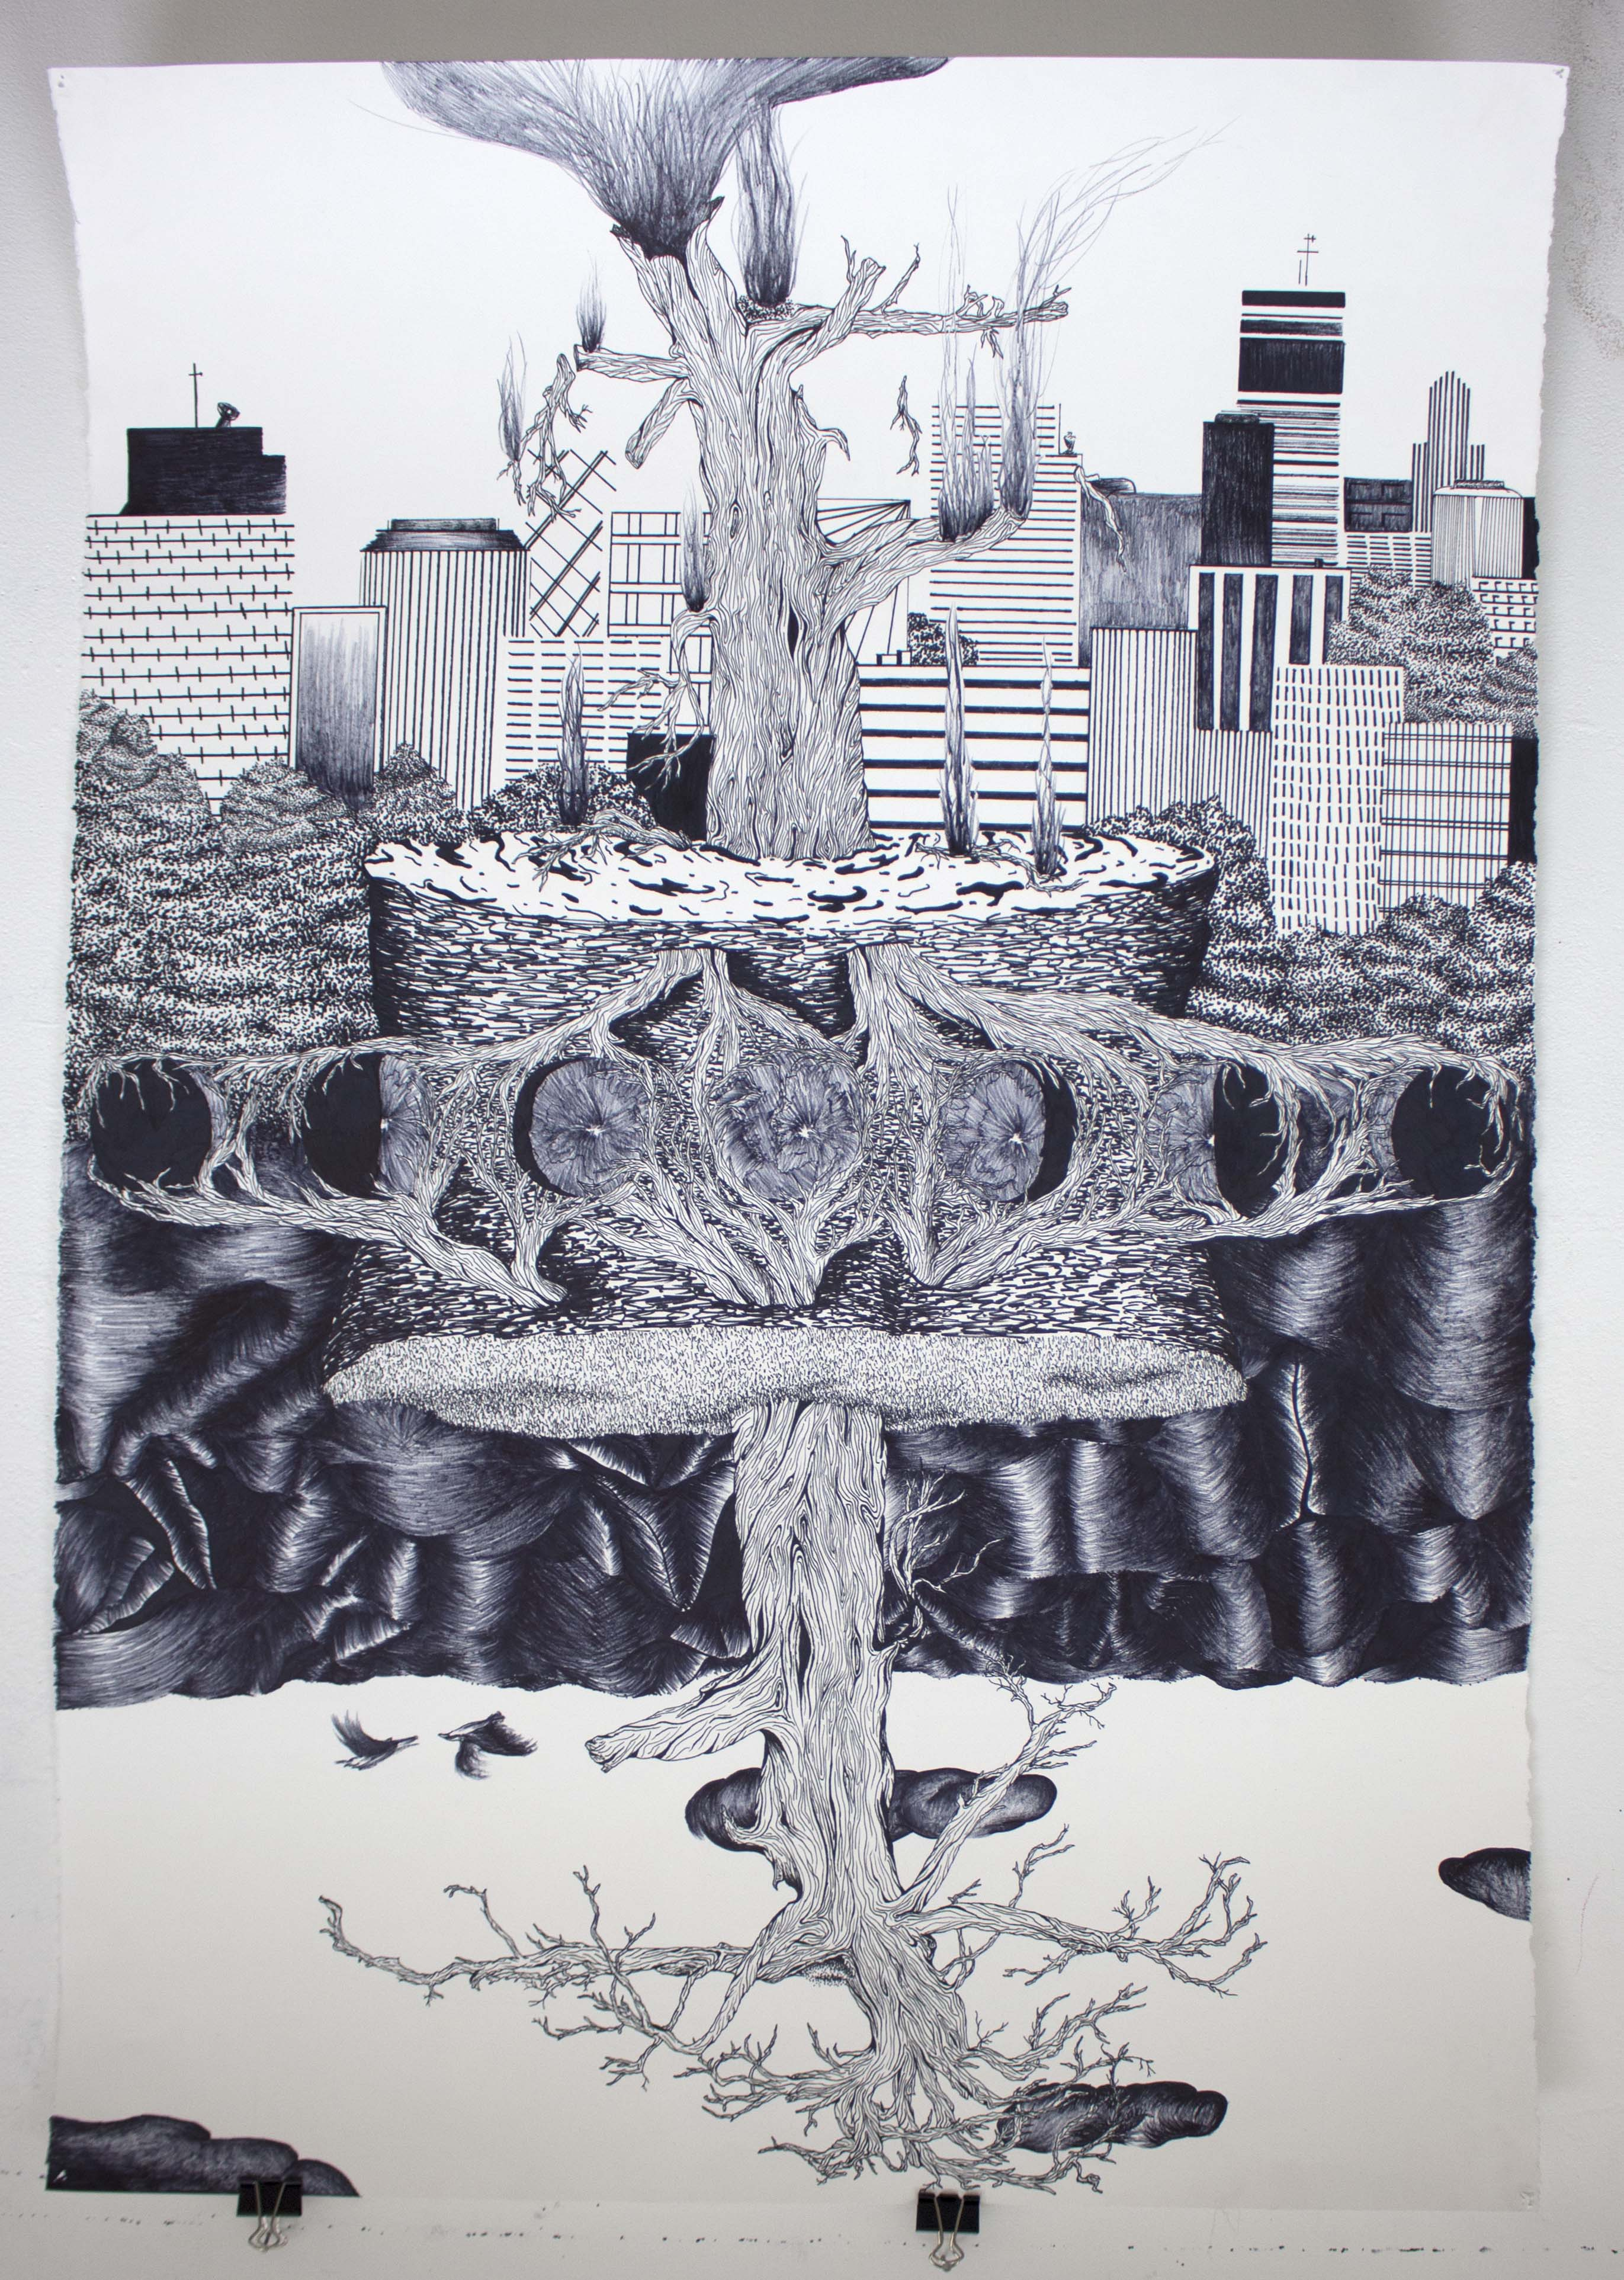 A drawing of a tree and a city